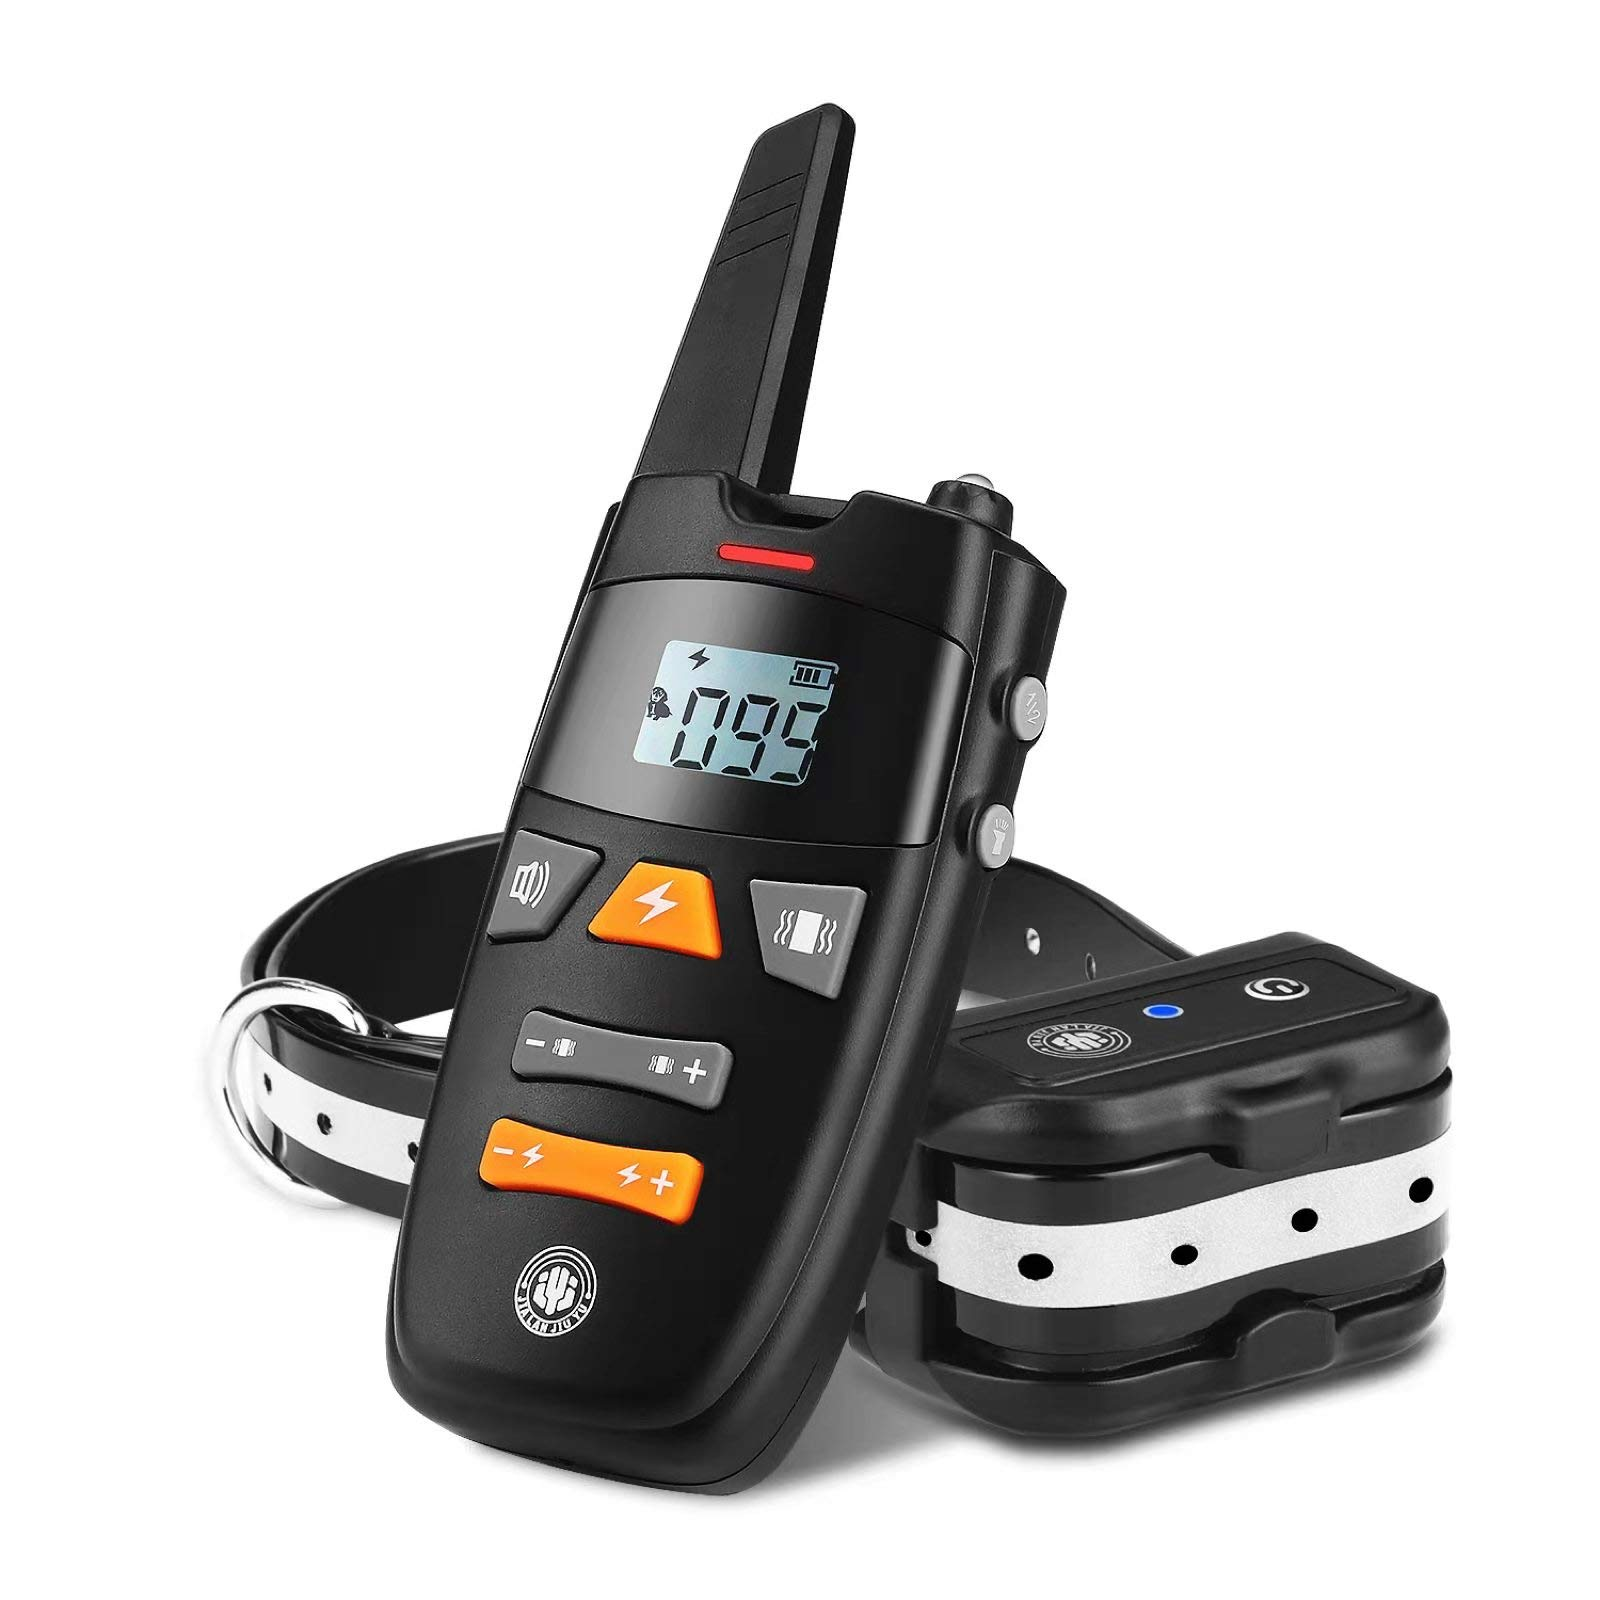 JIALANJIUYU Dog Training Collar,Rechargeable Shock Collar for Dogs, E-Collar up to 1800FT Remote Range, Beep/Vibration/Shock 3 Training Modes,100% Waterproof Shock Training Collar Dogs (Black-A77)